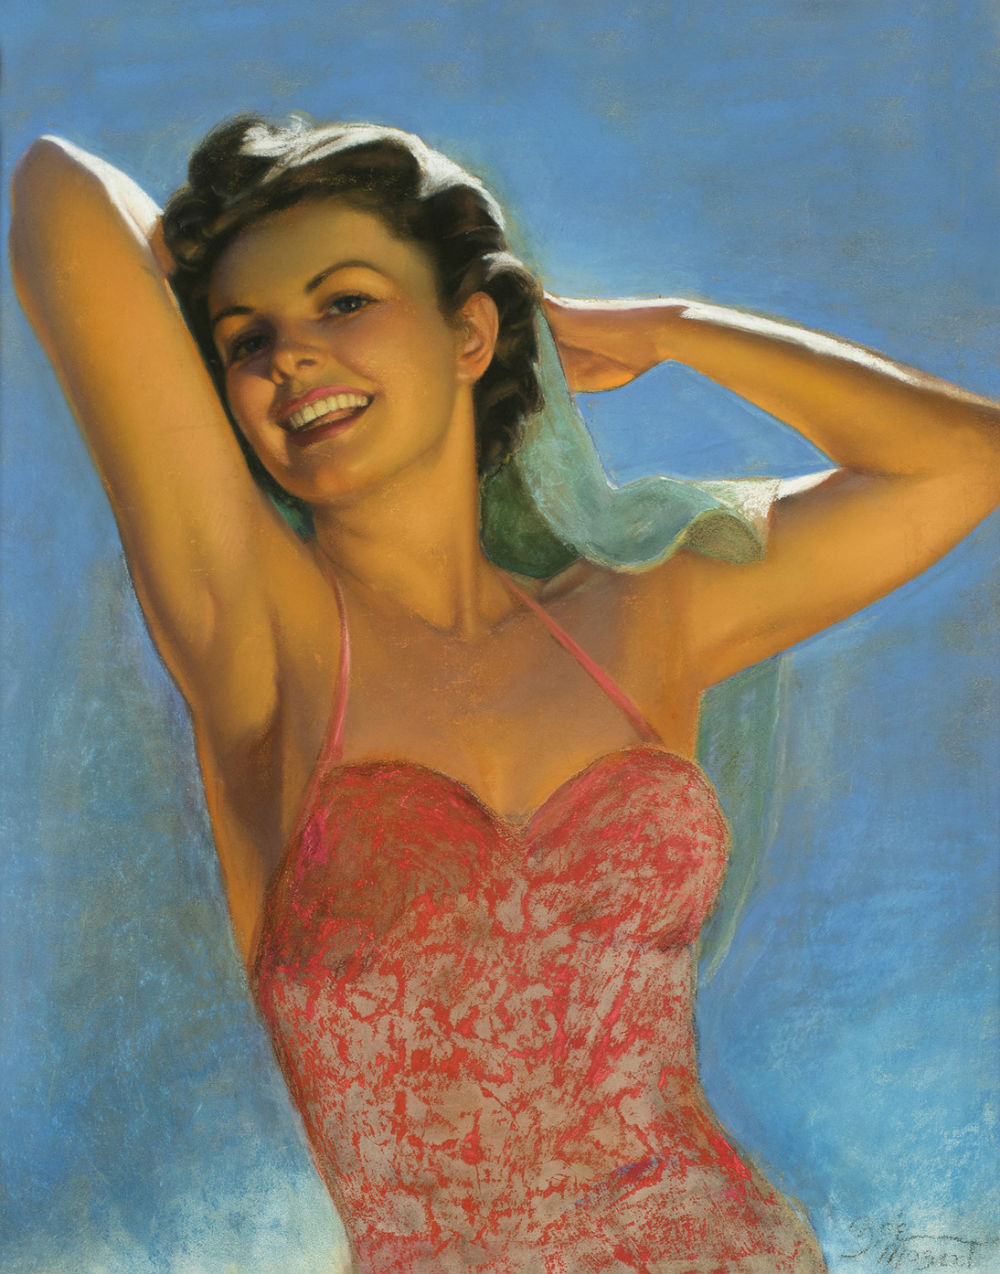 Mozert-Zoe-Woman-in-Red-Swimshirt-29-dot-5-x-23-dot-5-Pastel-c-1955.jpg